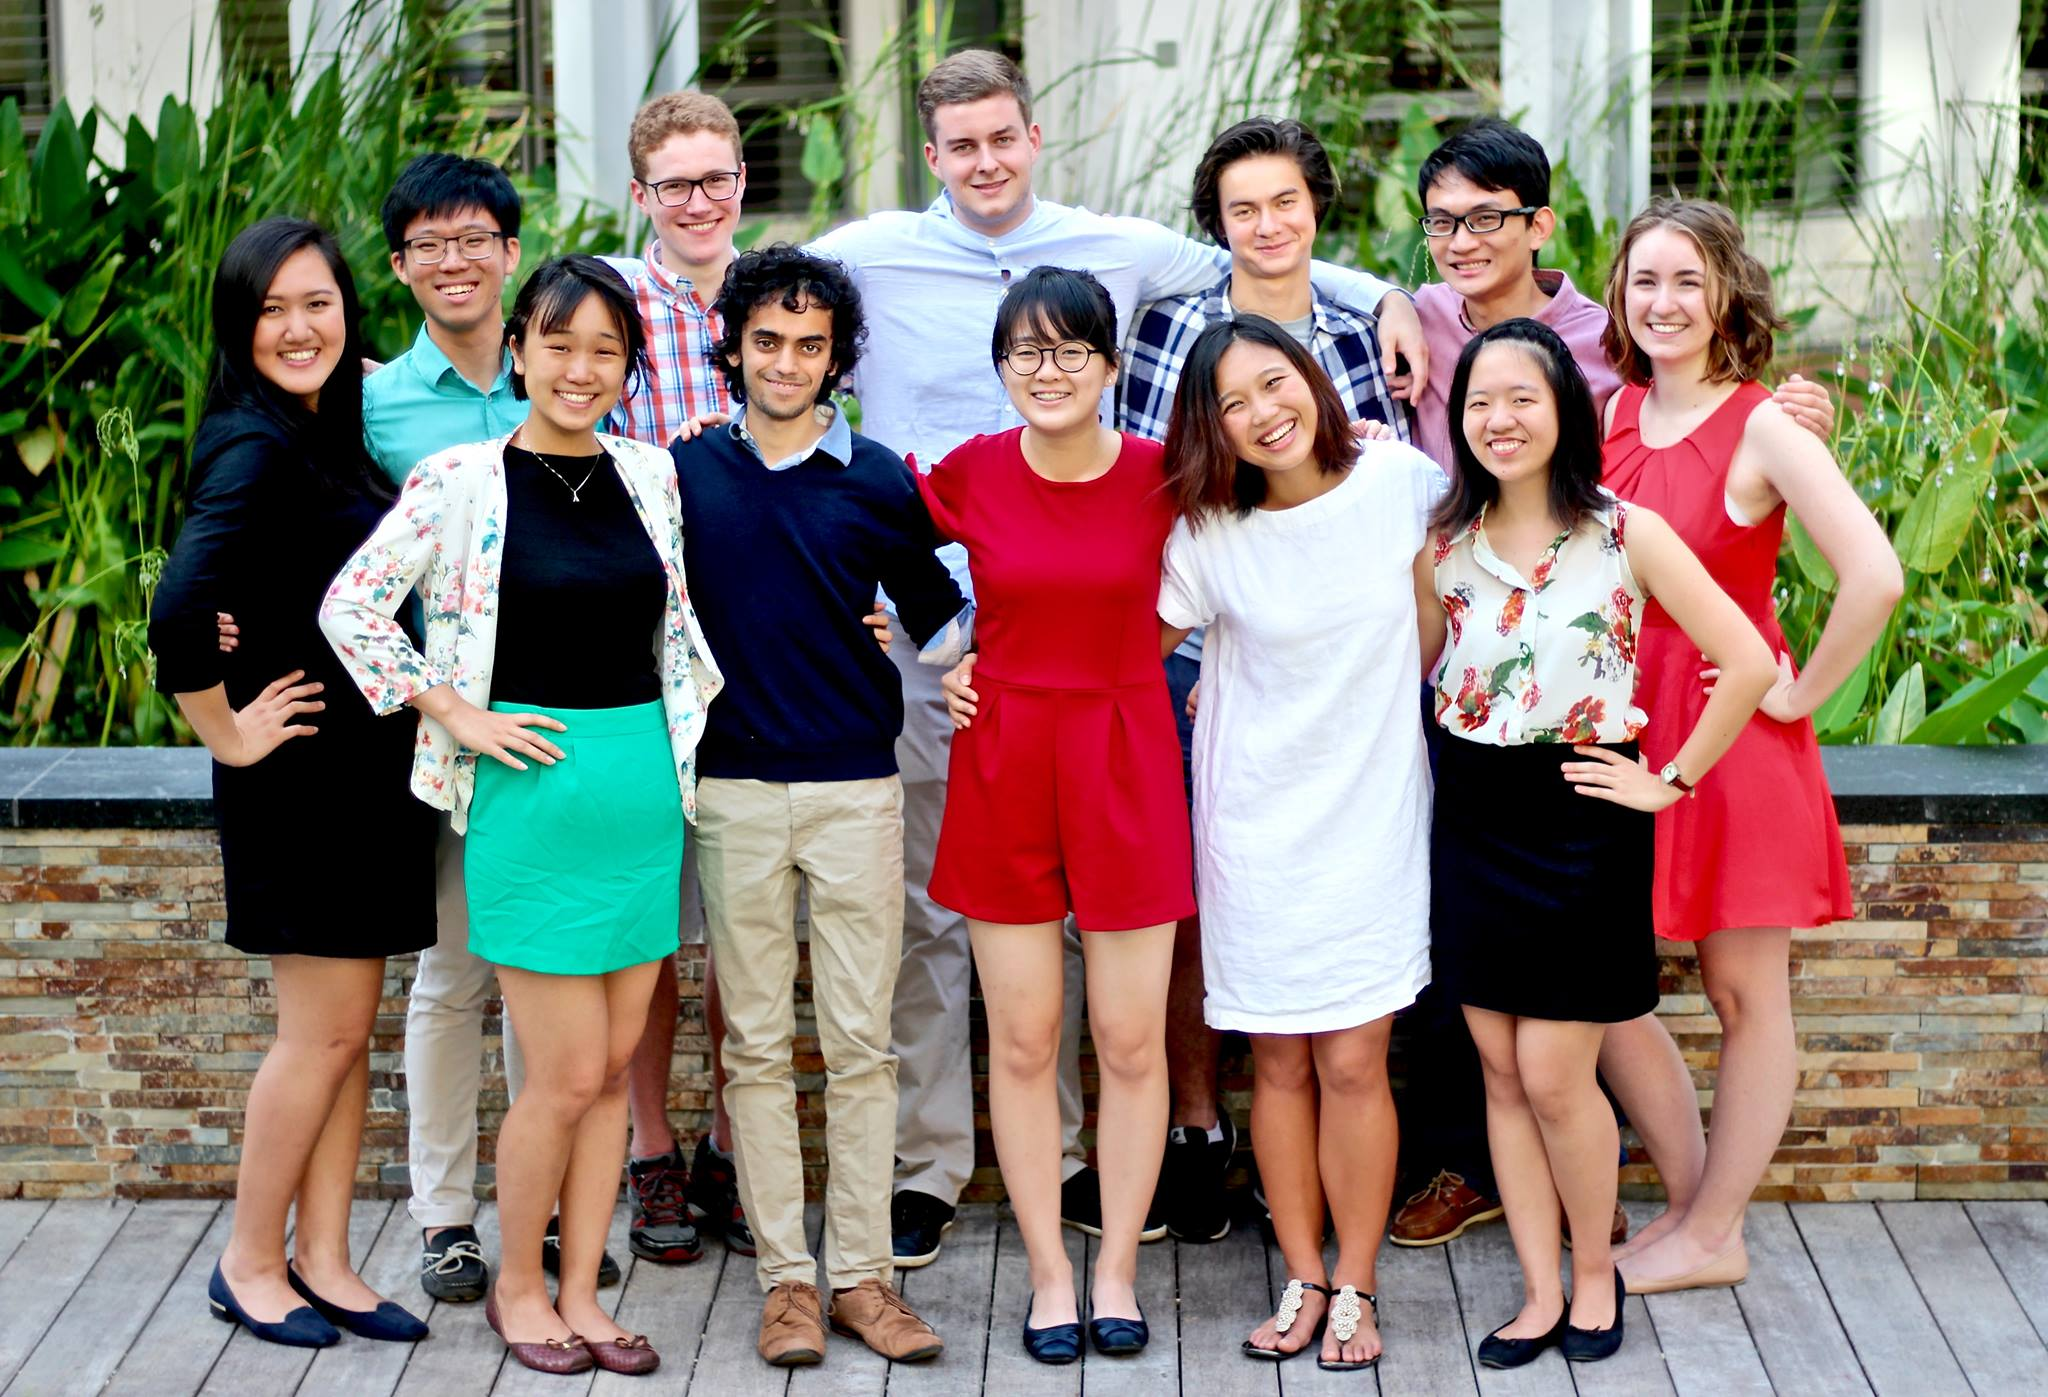 Yale-NUS's Second Student Government pose in the courtyard.